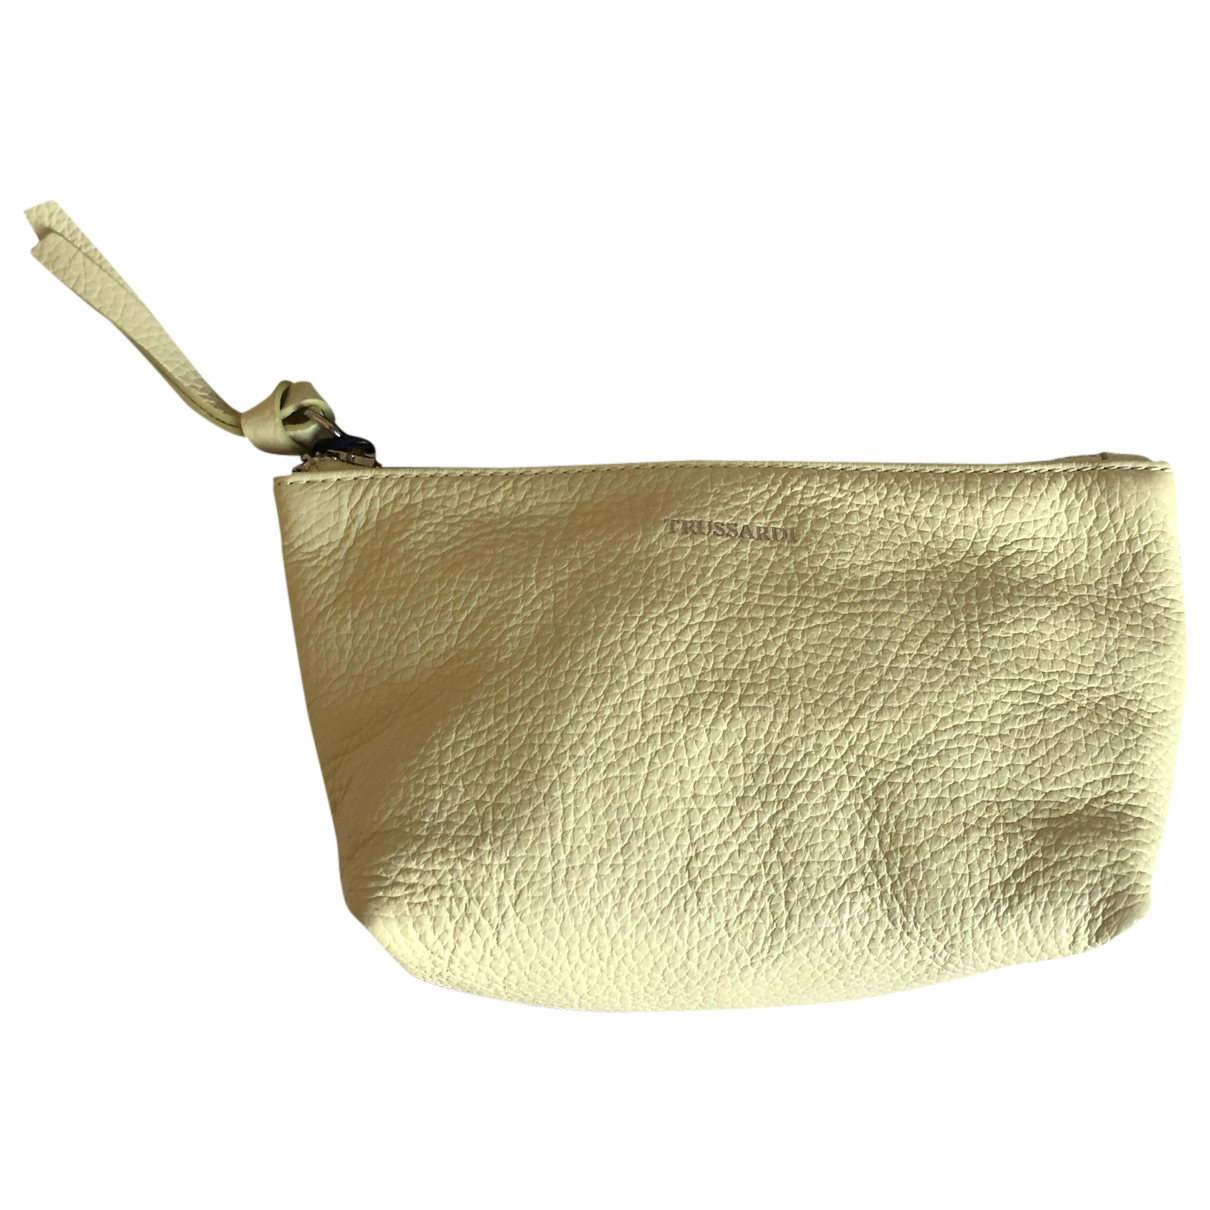 Trussardi N Yellow Leather Purses, wallet & cases for Women N